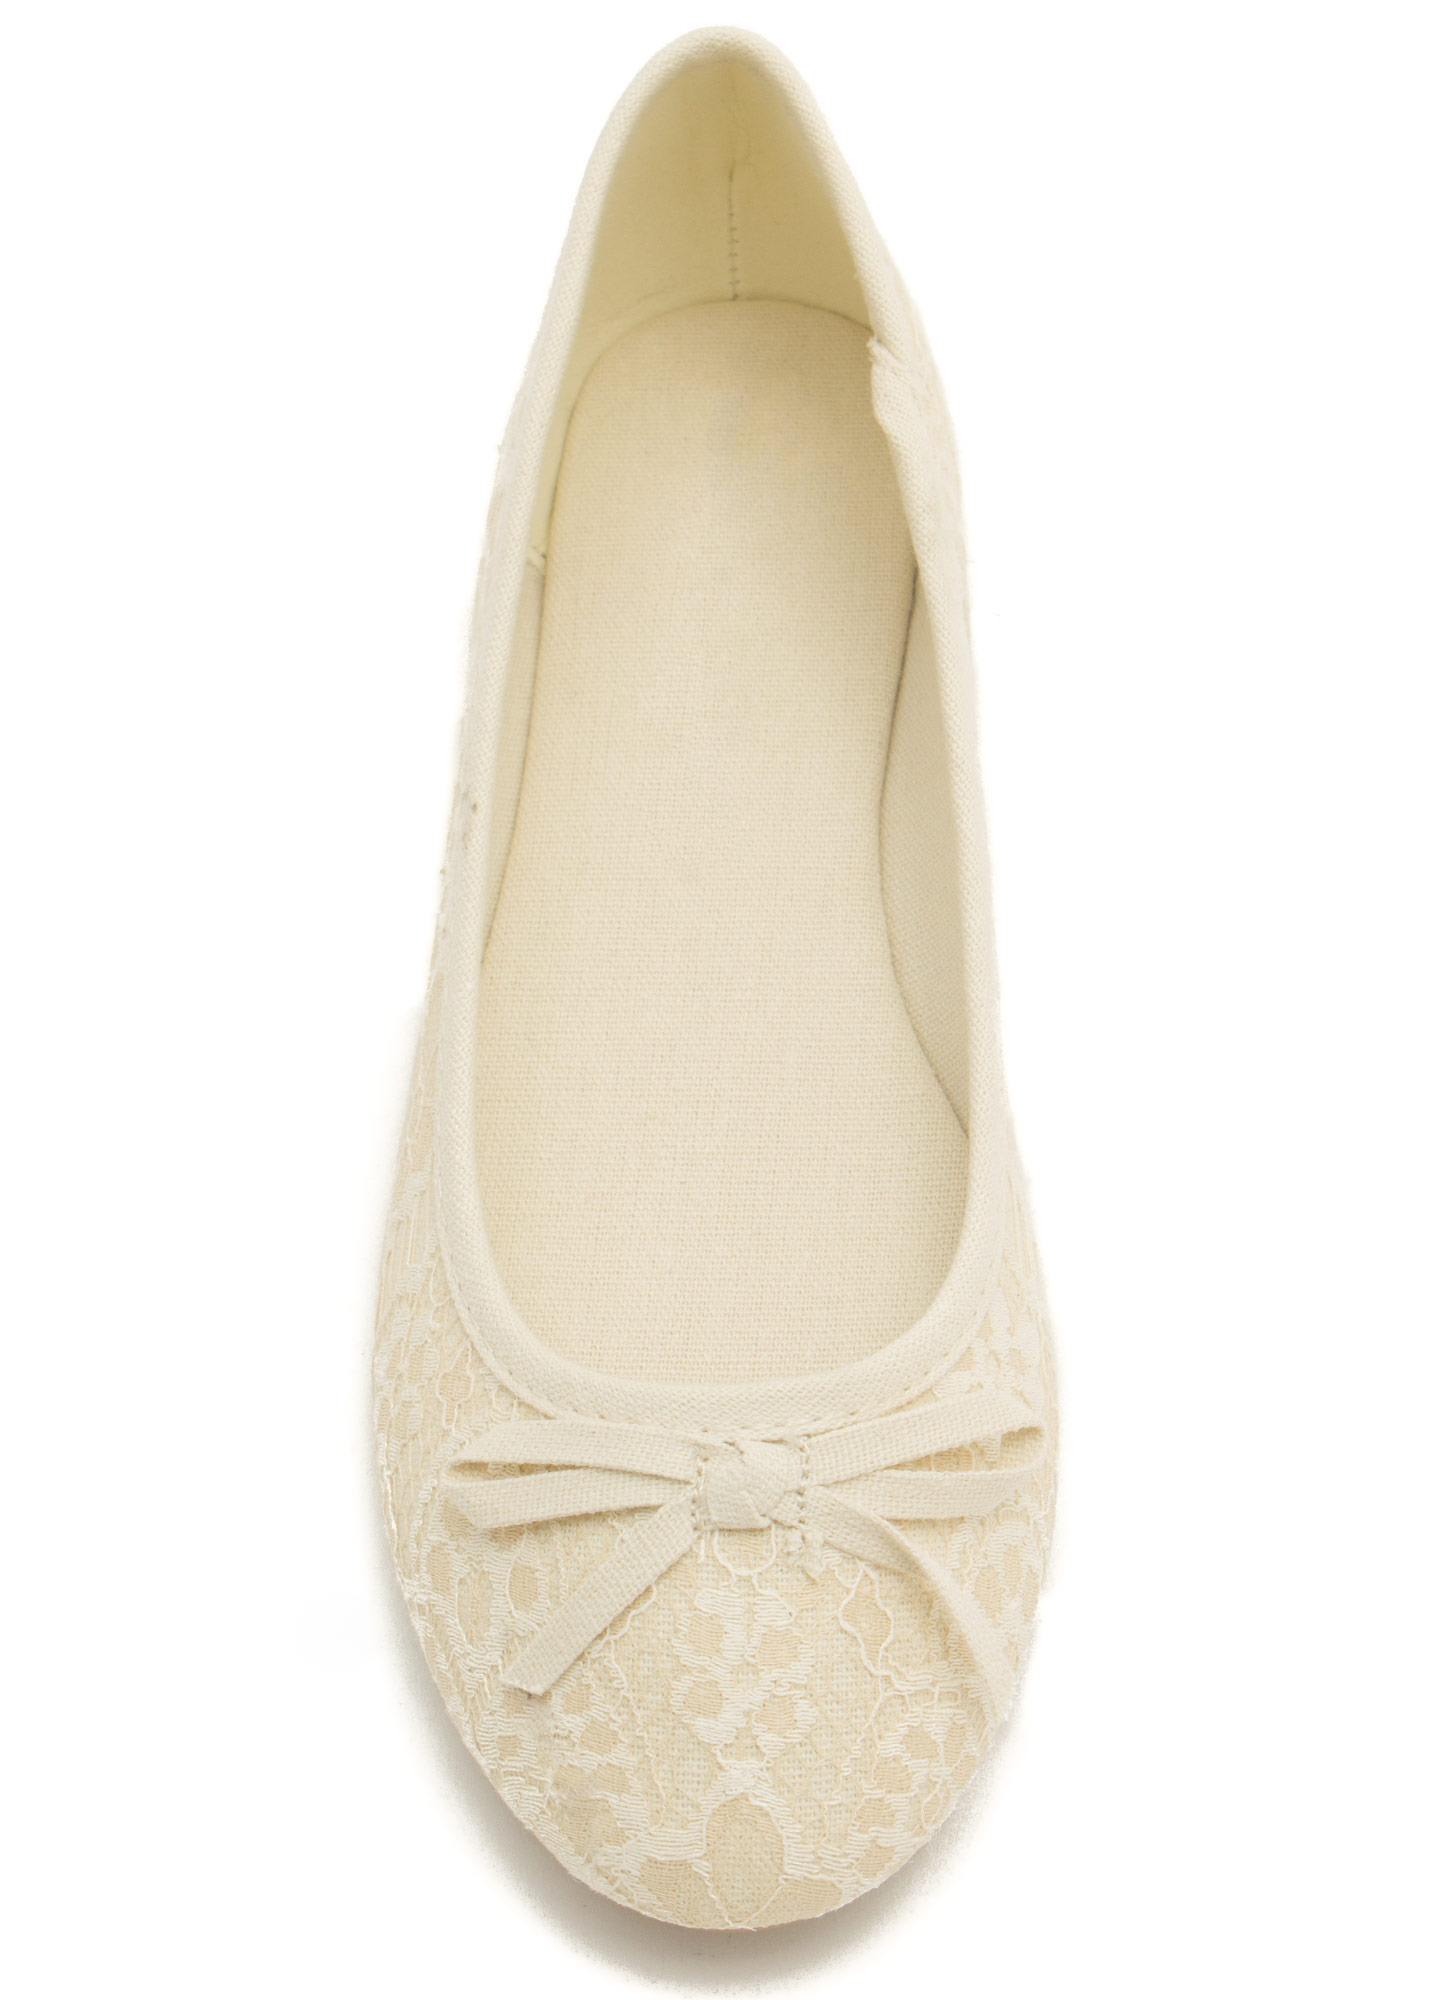 Lacy Ballet Flats OFFWHITE